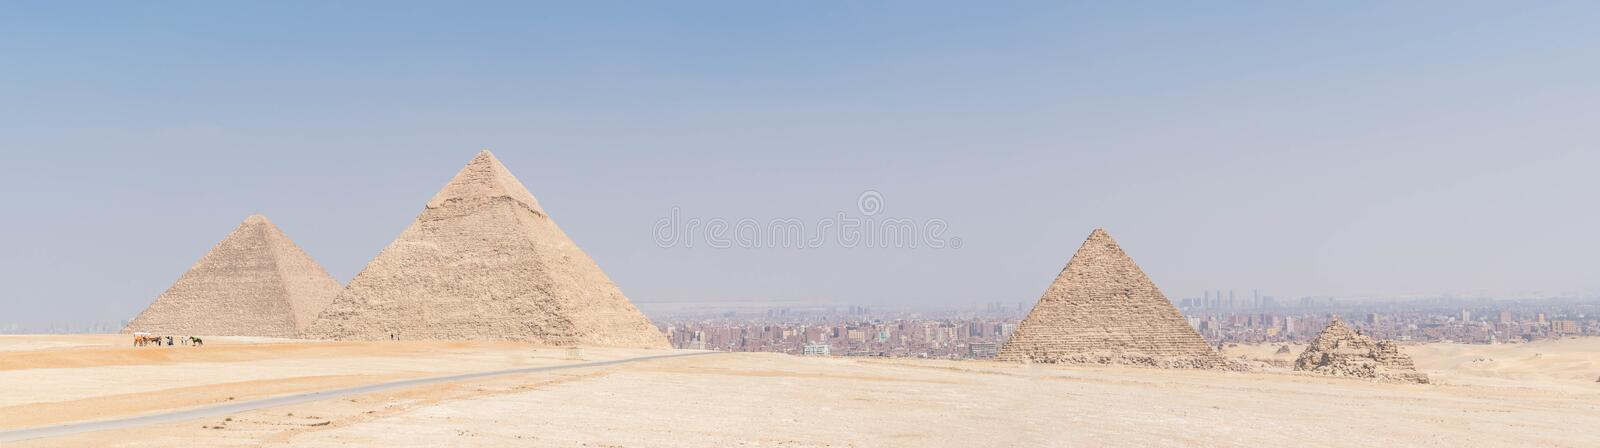 The Great Pyramids of ancient Egypt stock image